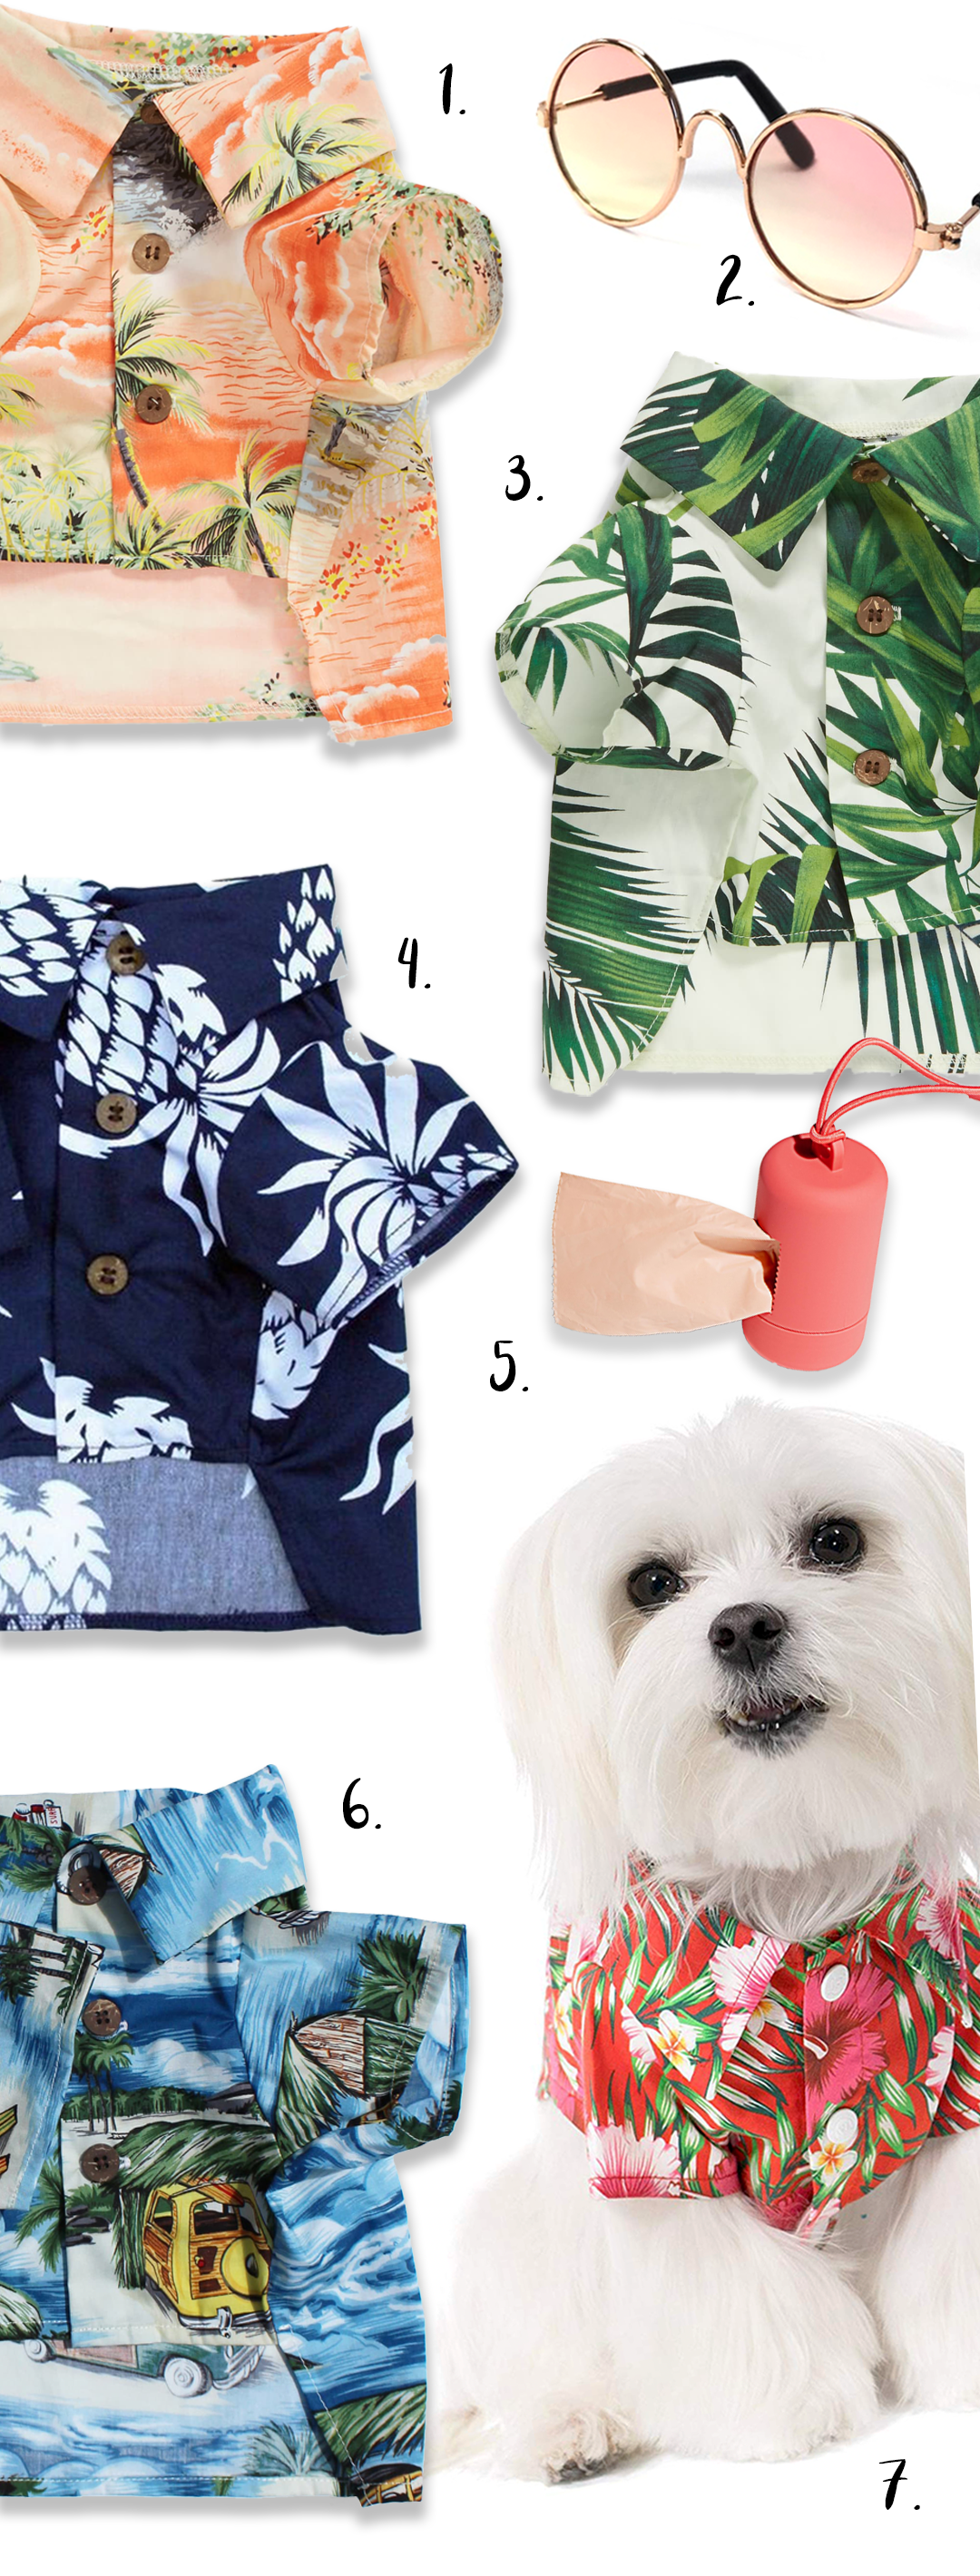 HAWAIIAN SHIRTS FOR DOGS - SUMMER SHIRTS FOR STYLISH DOGS - heydjangles.com - dog Hawaiian shirts, dog threads, clothing for dogs, BBQ shirts, Aloho shirts for dogs #summersyle #doglover